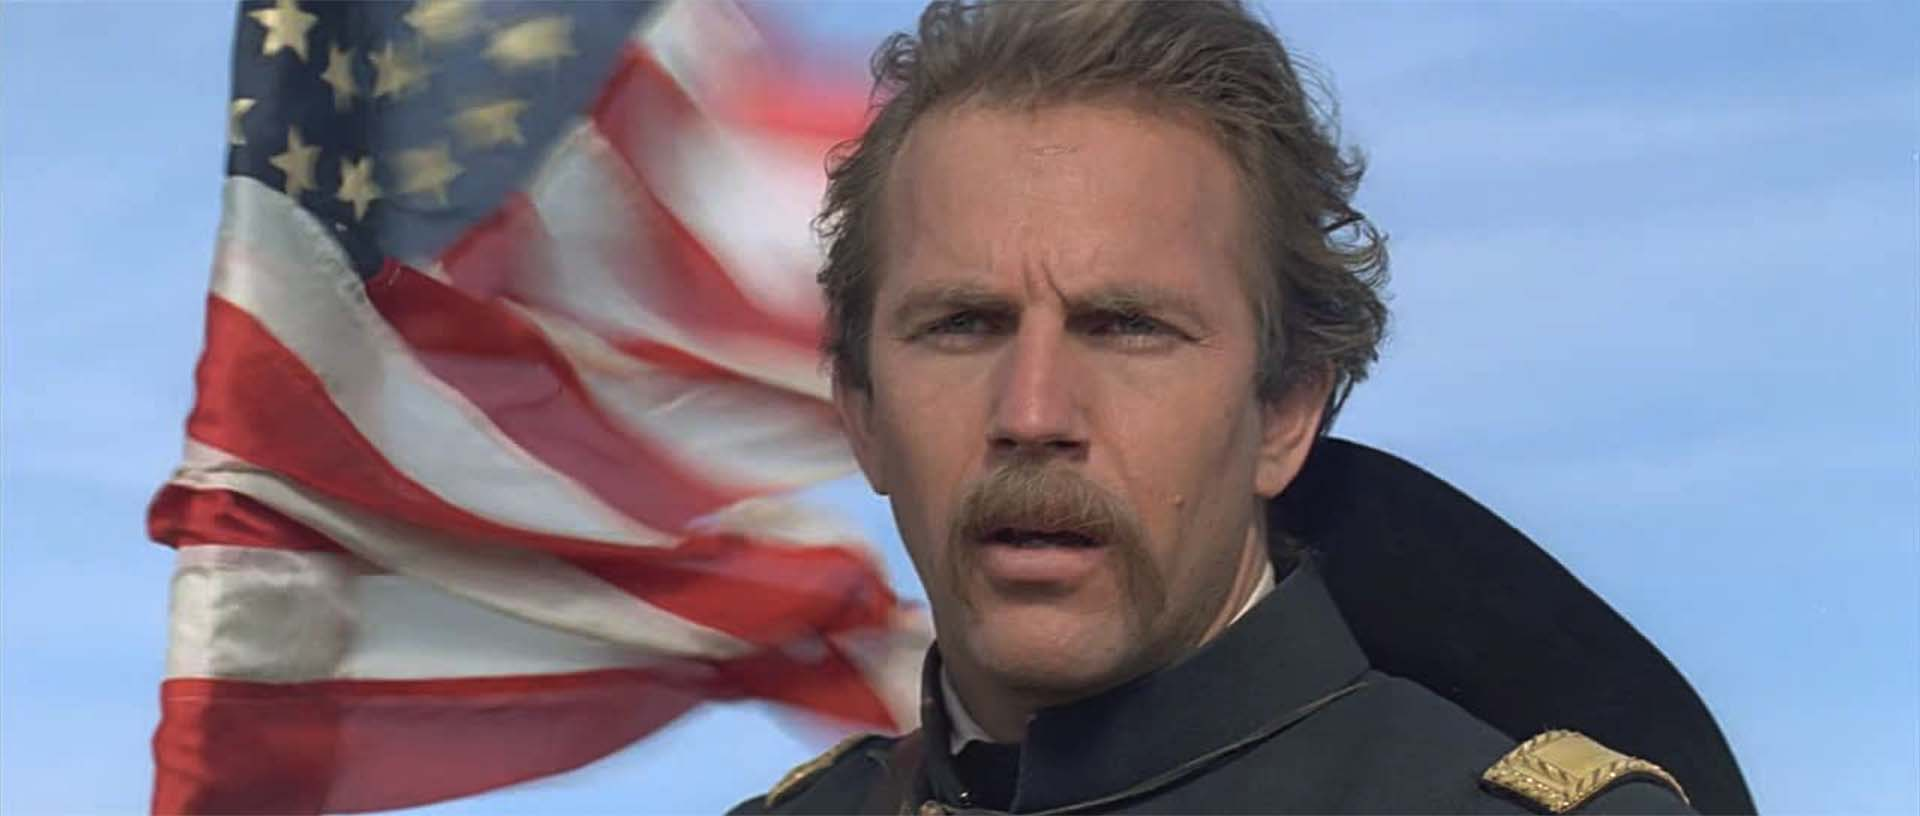 Dances with Wolves 1990 movie still 1